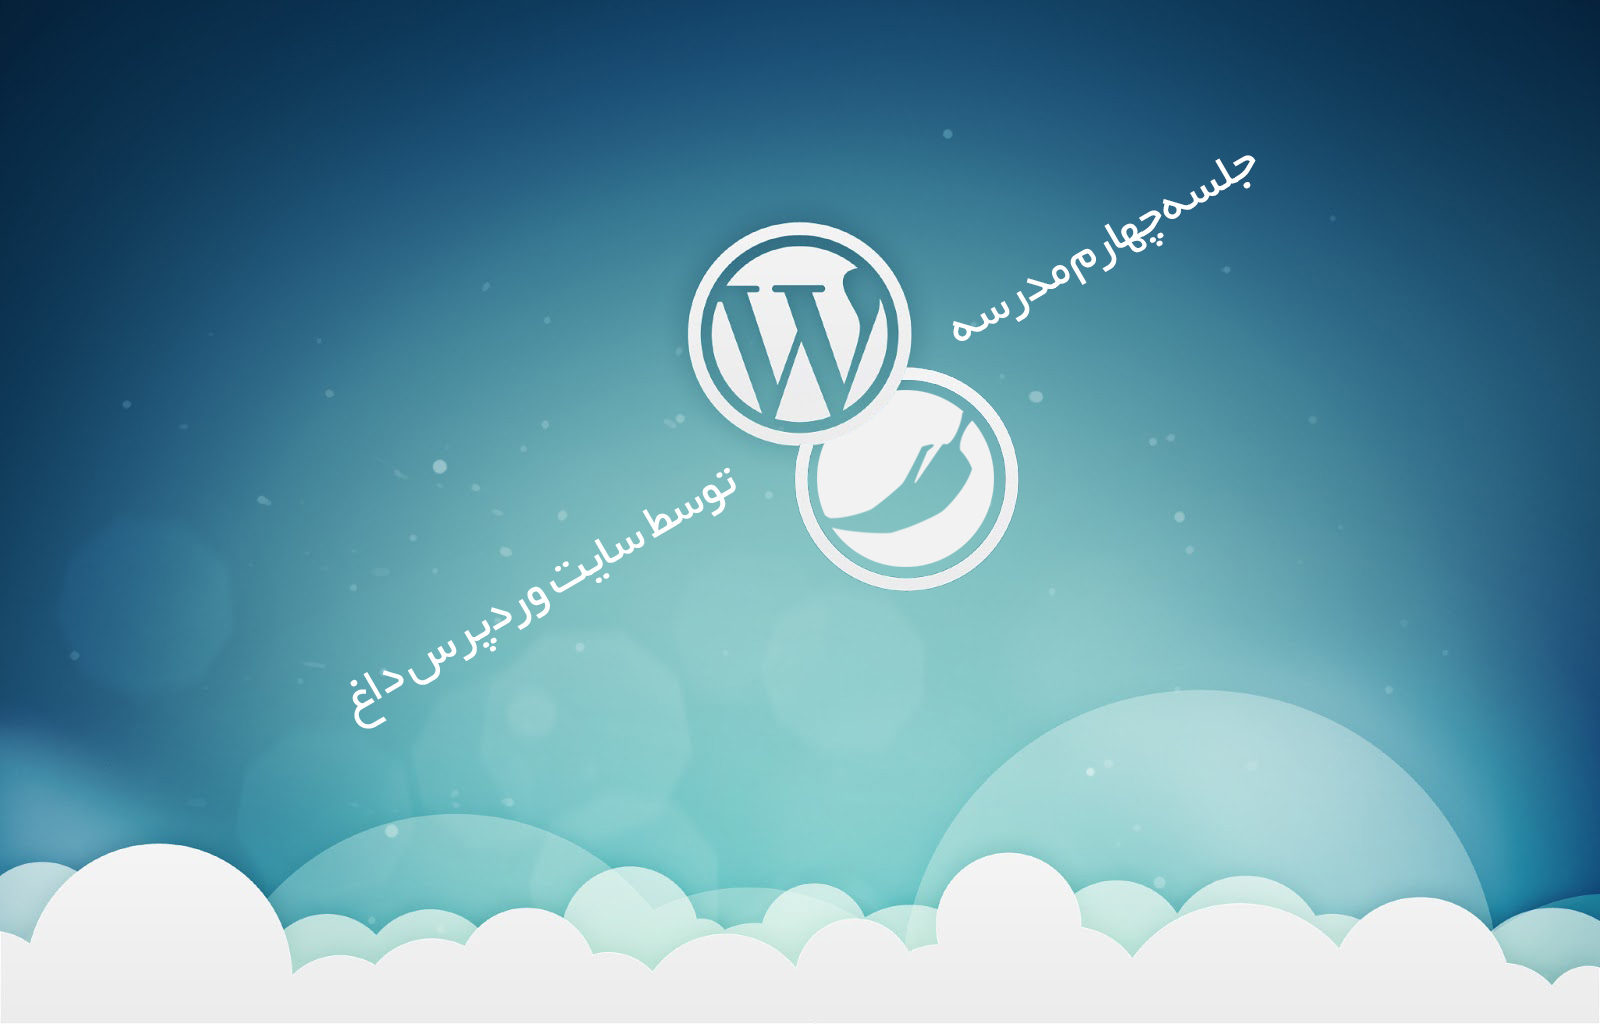 school-wordpress-redwp-4